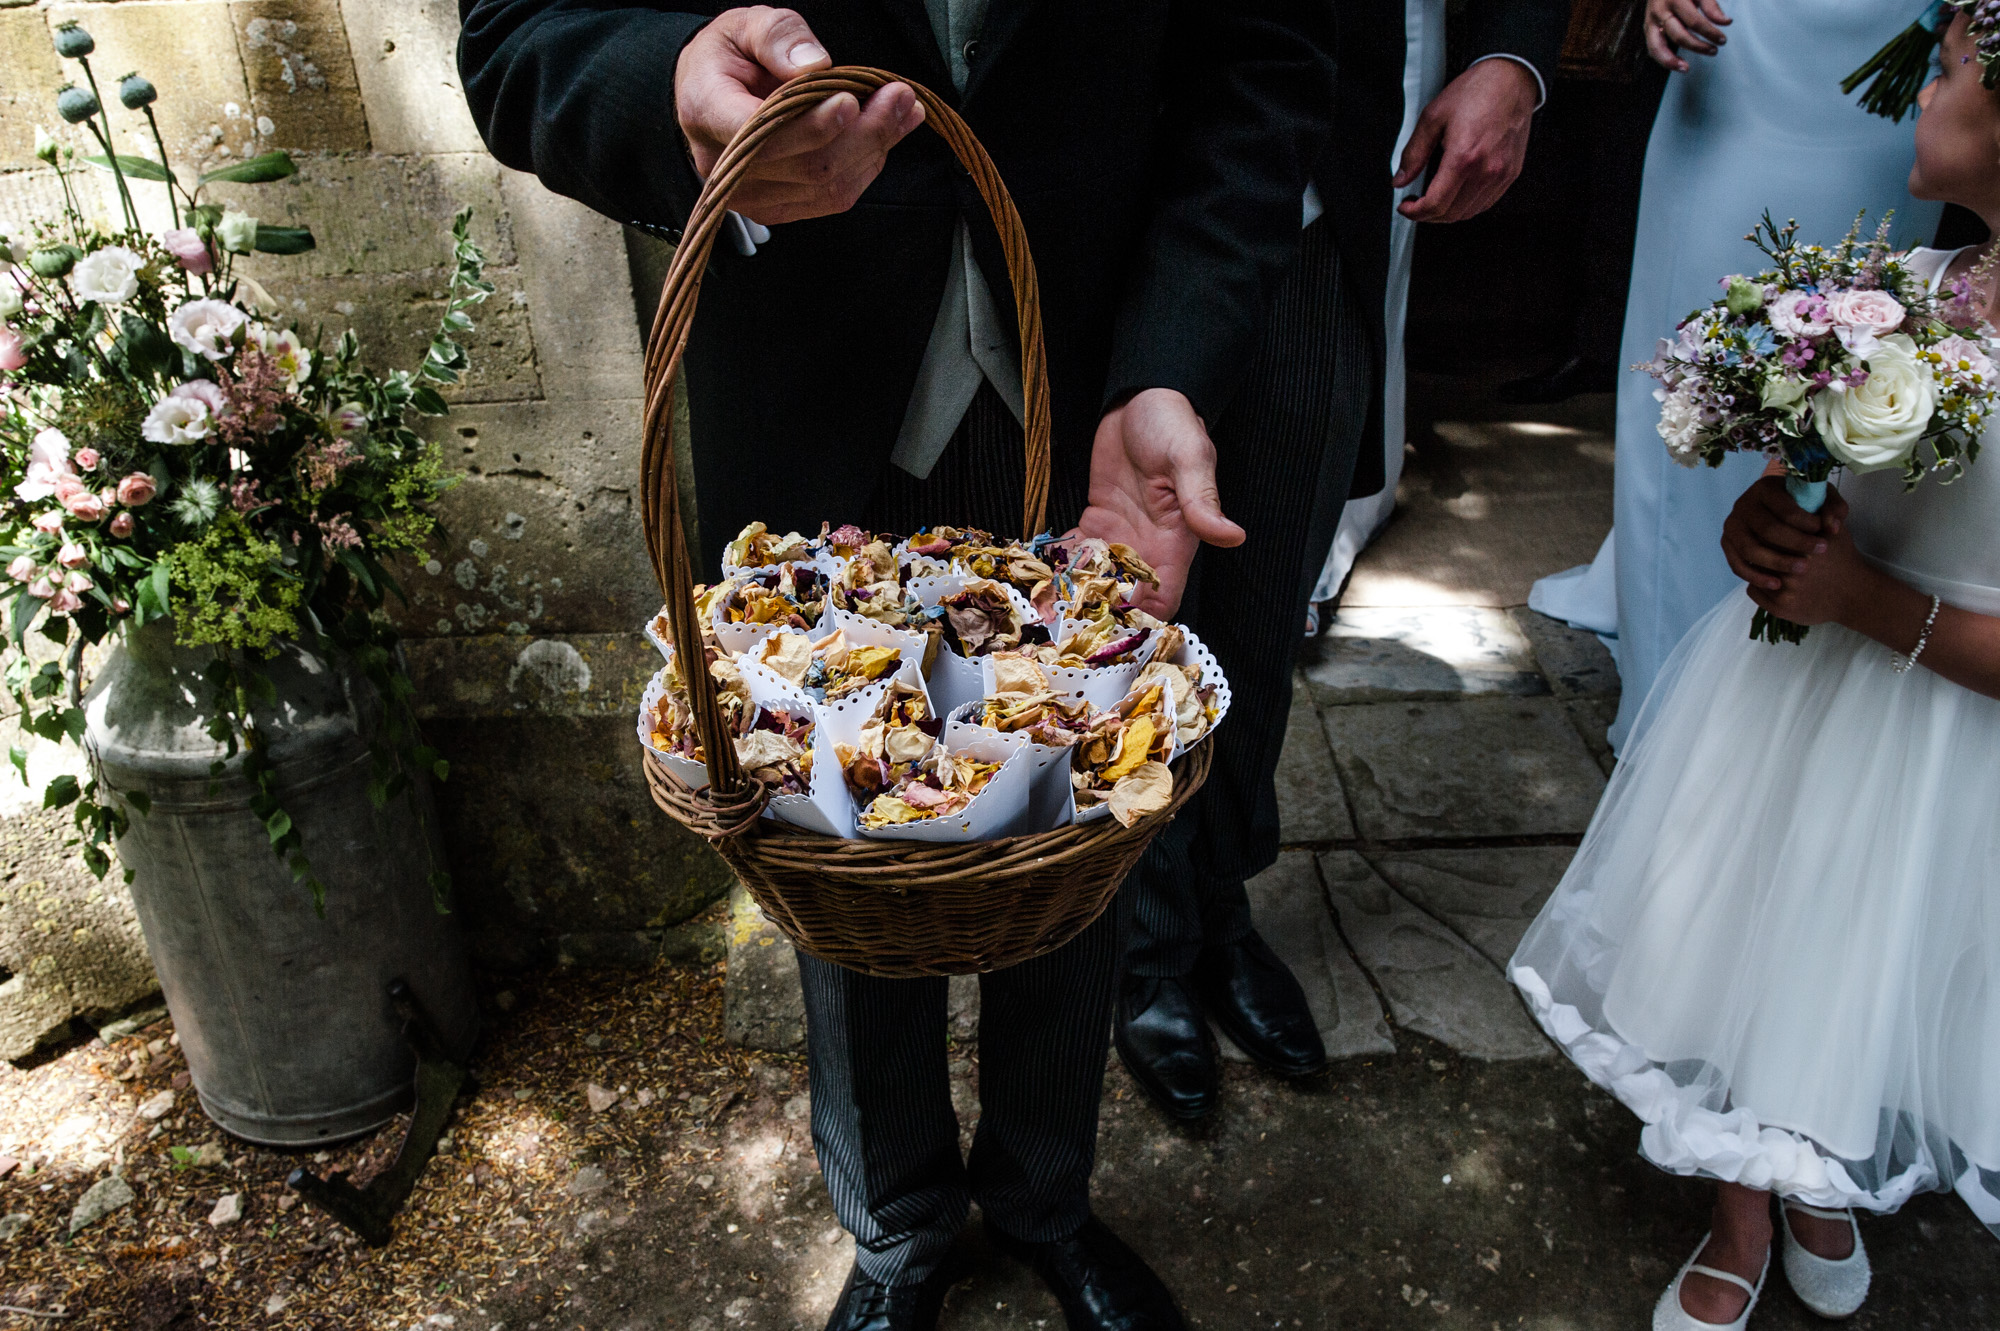 Cotswold Wedding Photography 11.09.1817.jpg